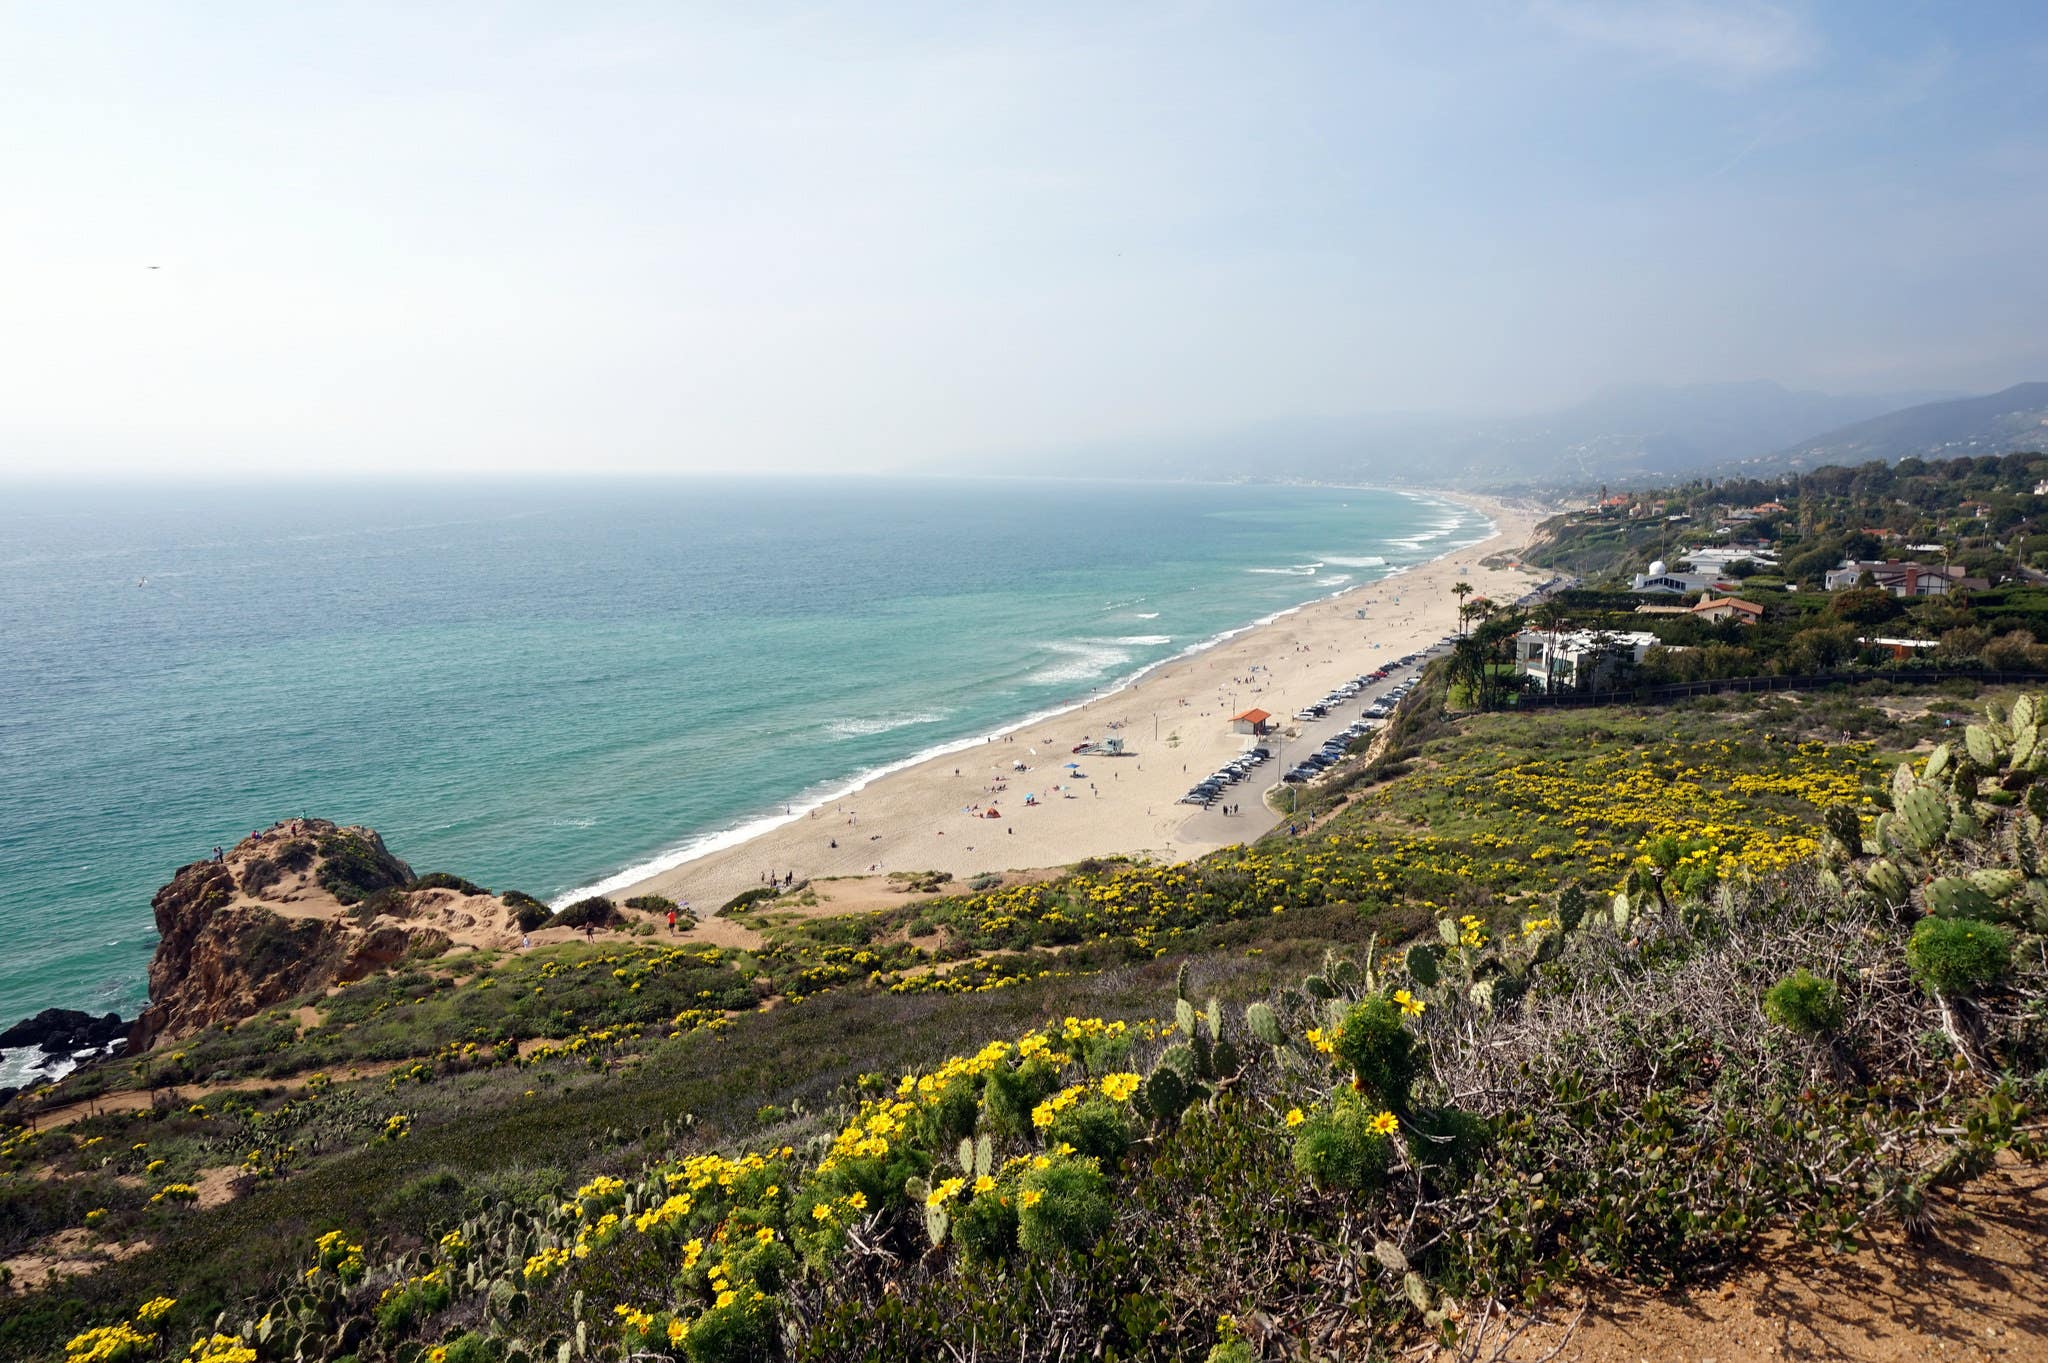 Westward Beach from Point Dume State Park | Photo: Matt Kieffer, Flickr